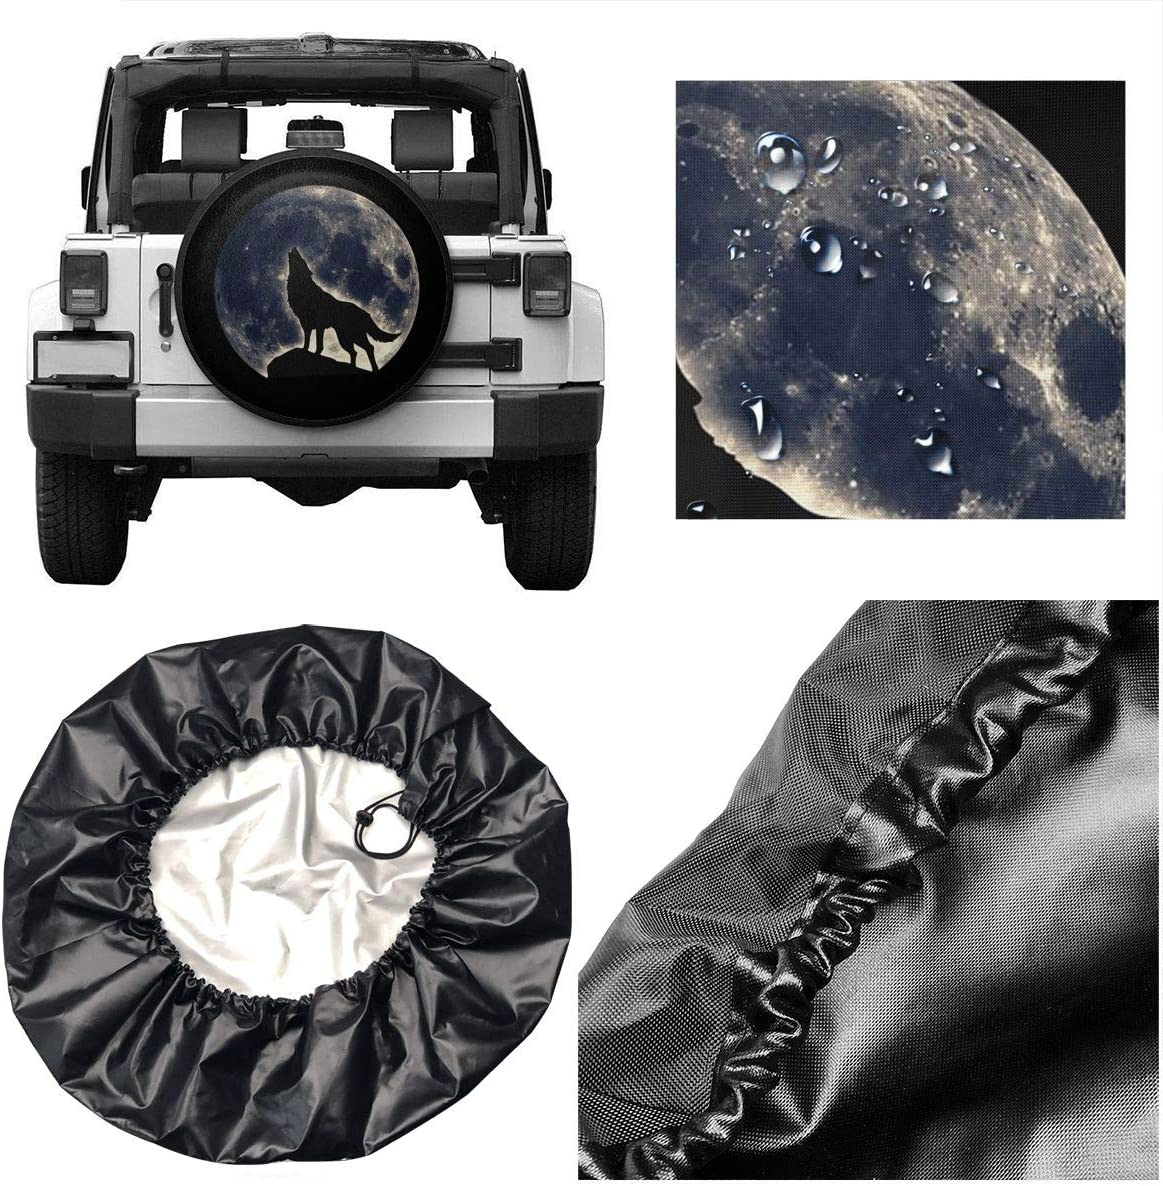 XOMAO Various Kinds of Horses Spare Tire Cover Polyester Universal Dust-Proof Waterproof Wheel Covers for Trailer RV SUV Truck and Many Vehicles 14 15 16 17